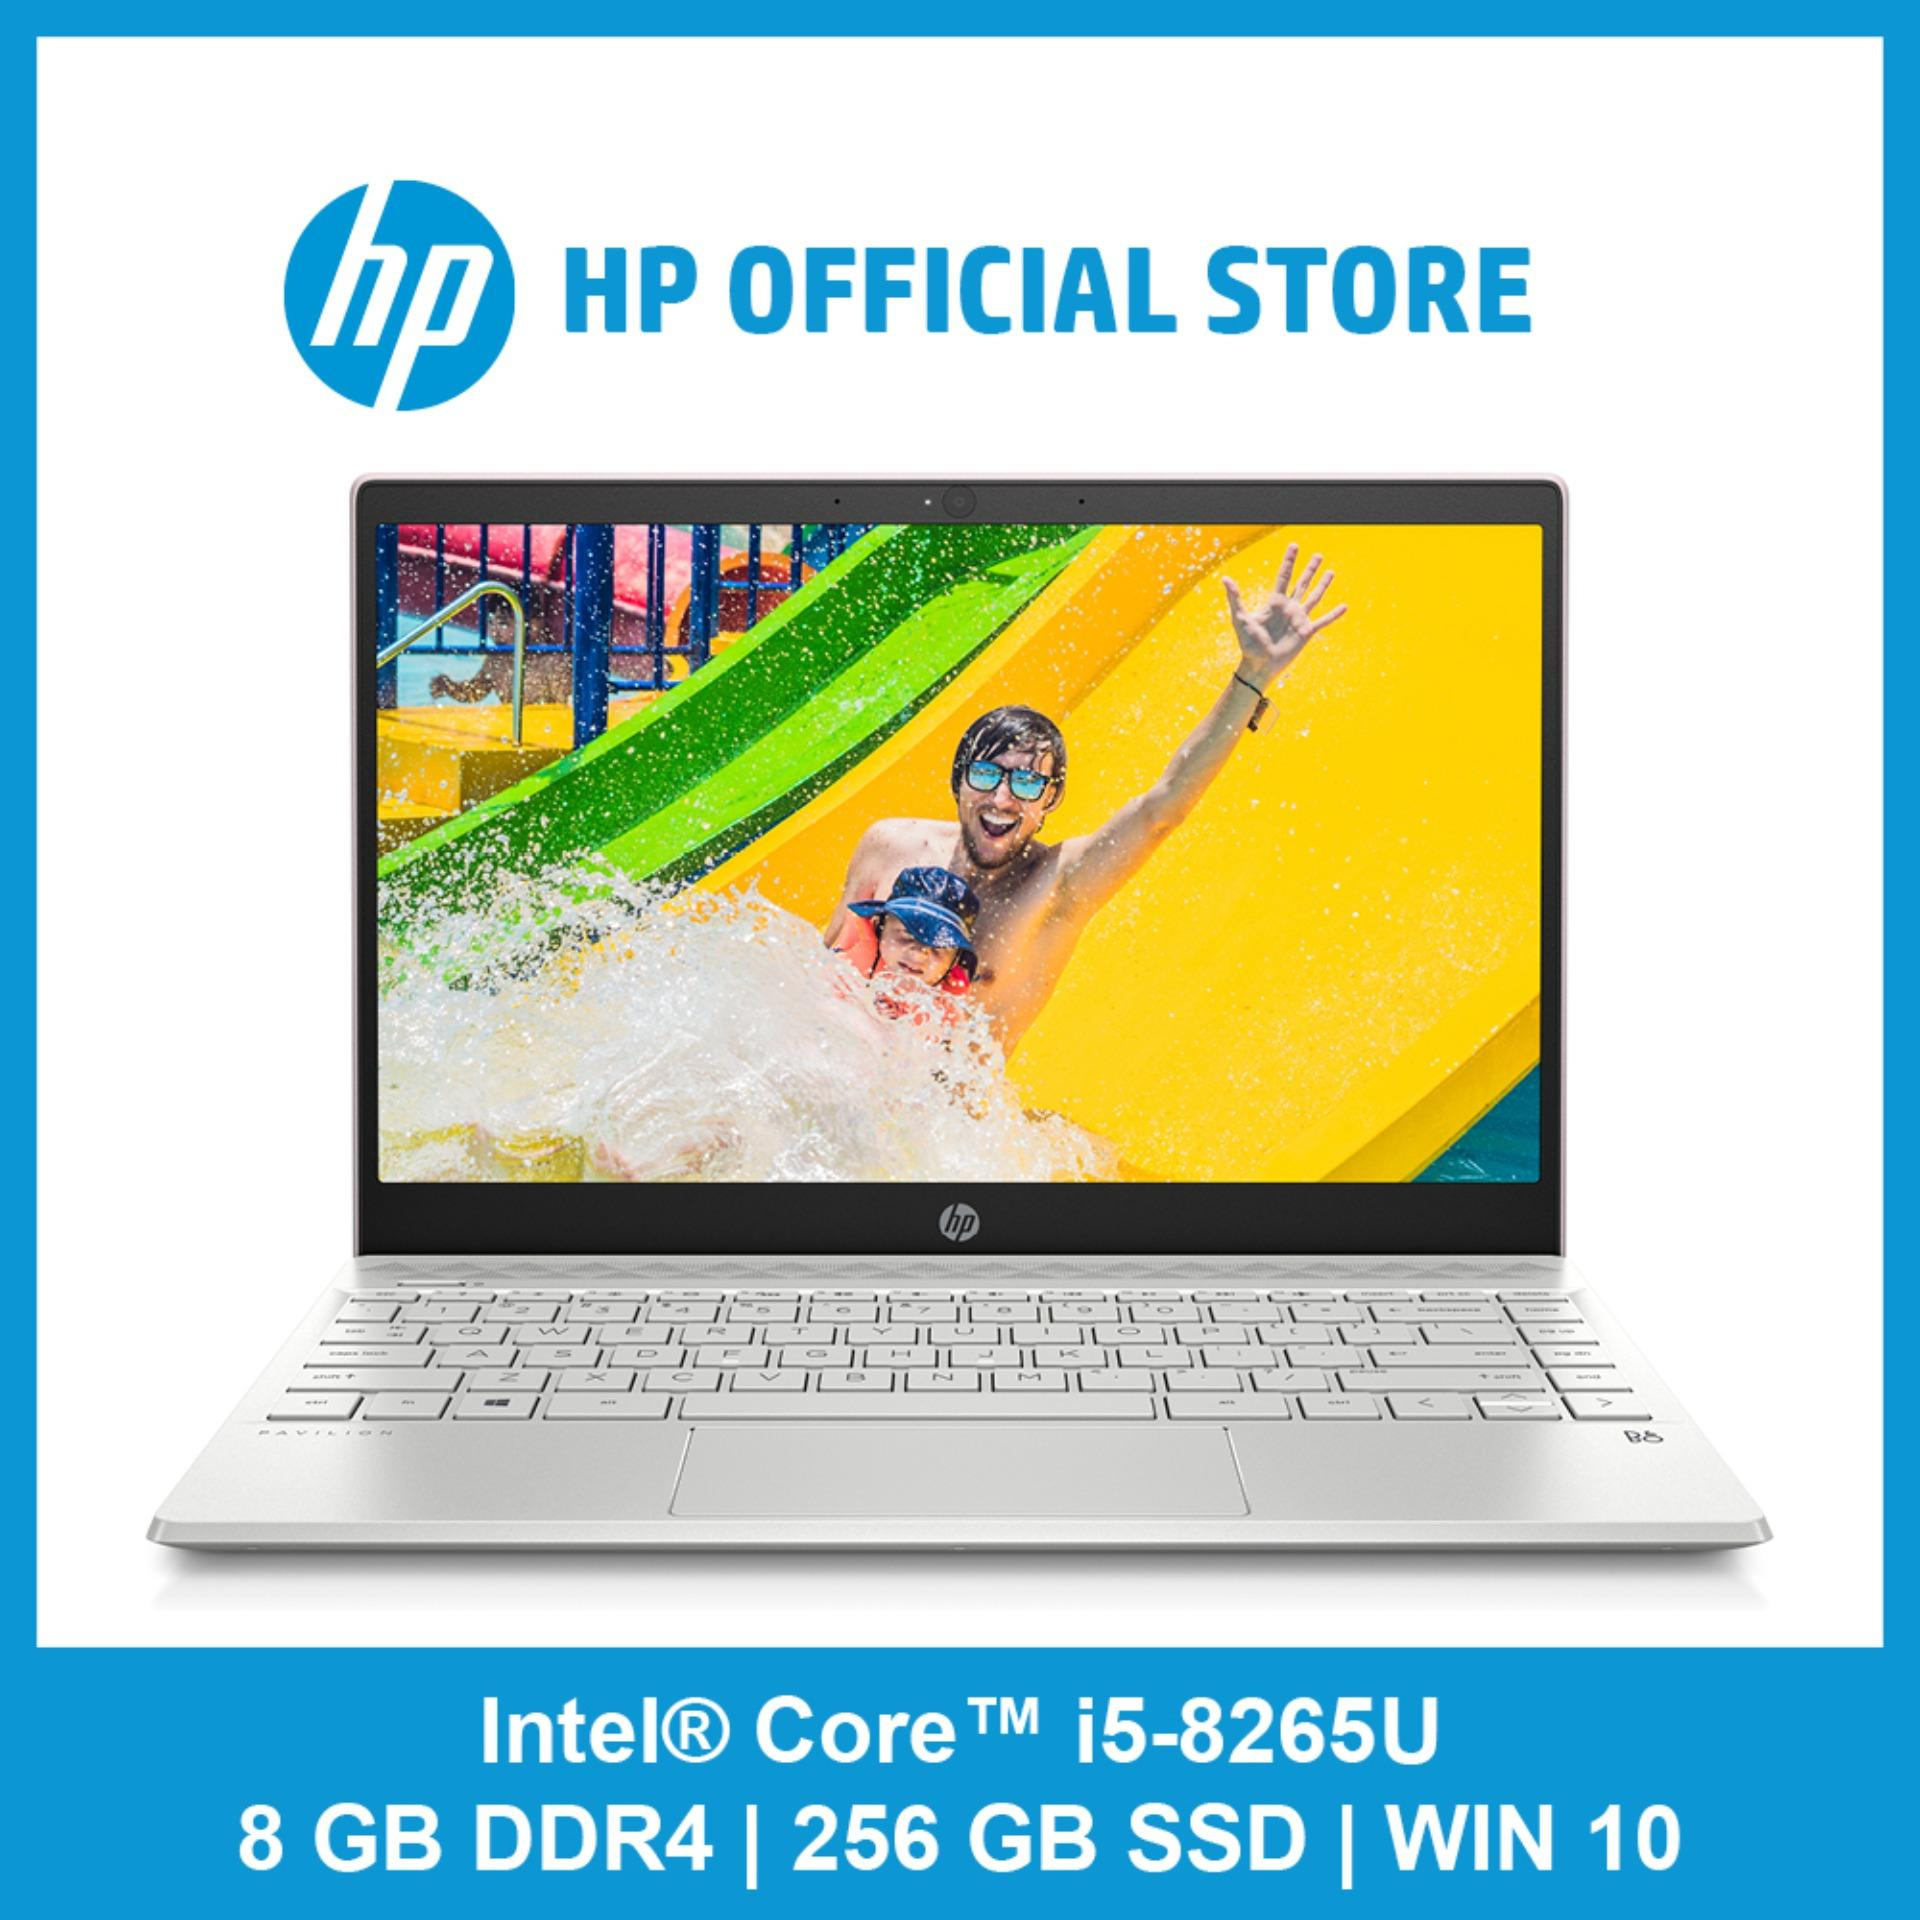 HP Pavilion Laptop 13-an0047tu / Intel® Core™ i5-8265U/8 GB DDR4/256 GB SSD/WIN 10